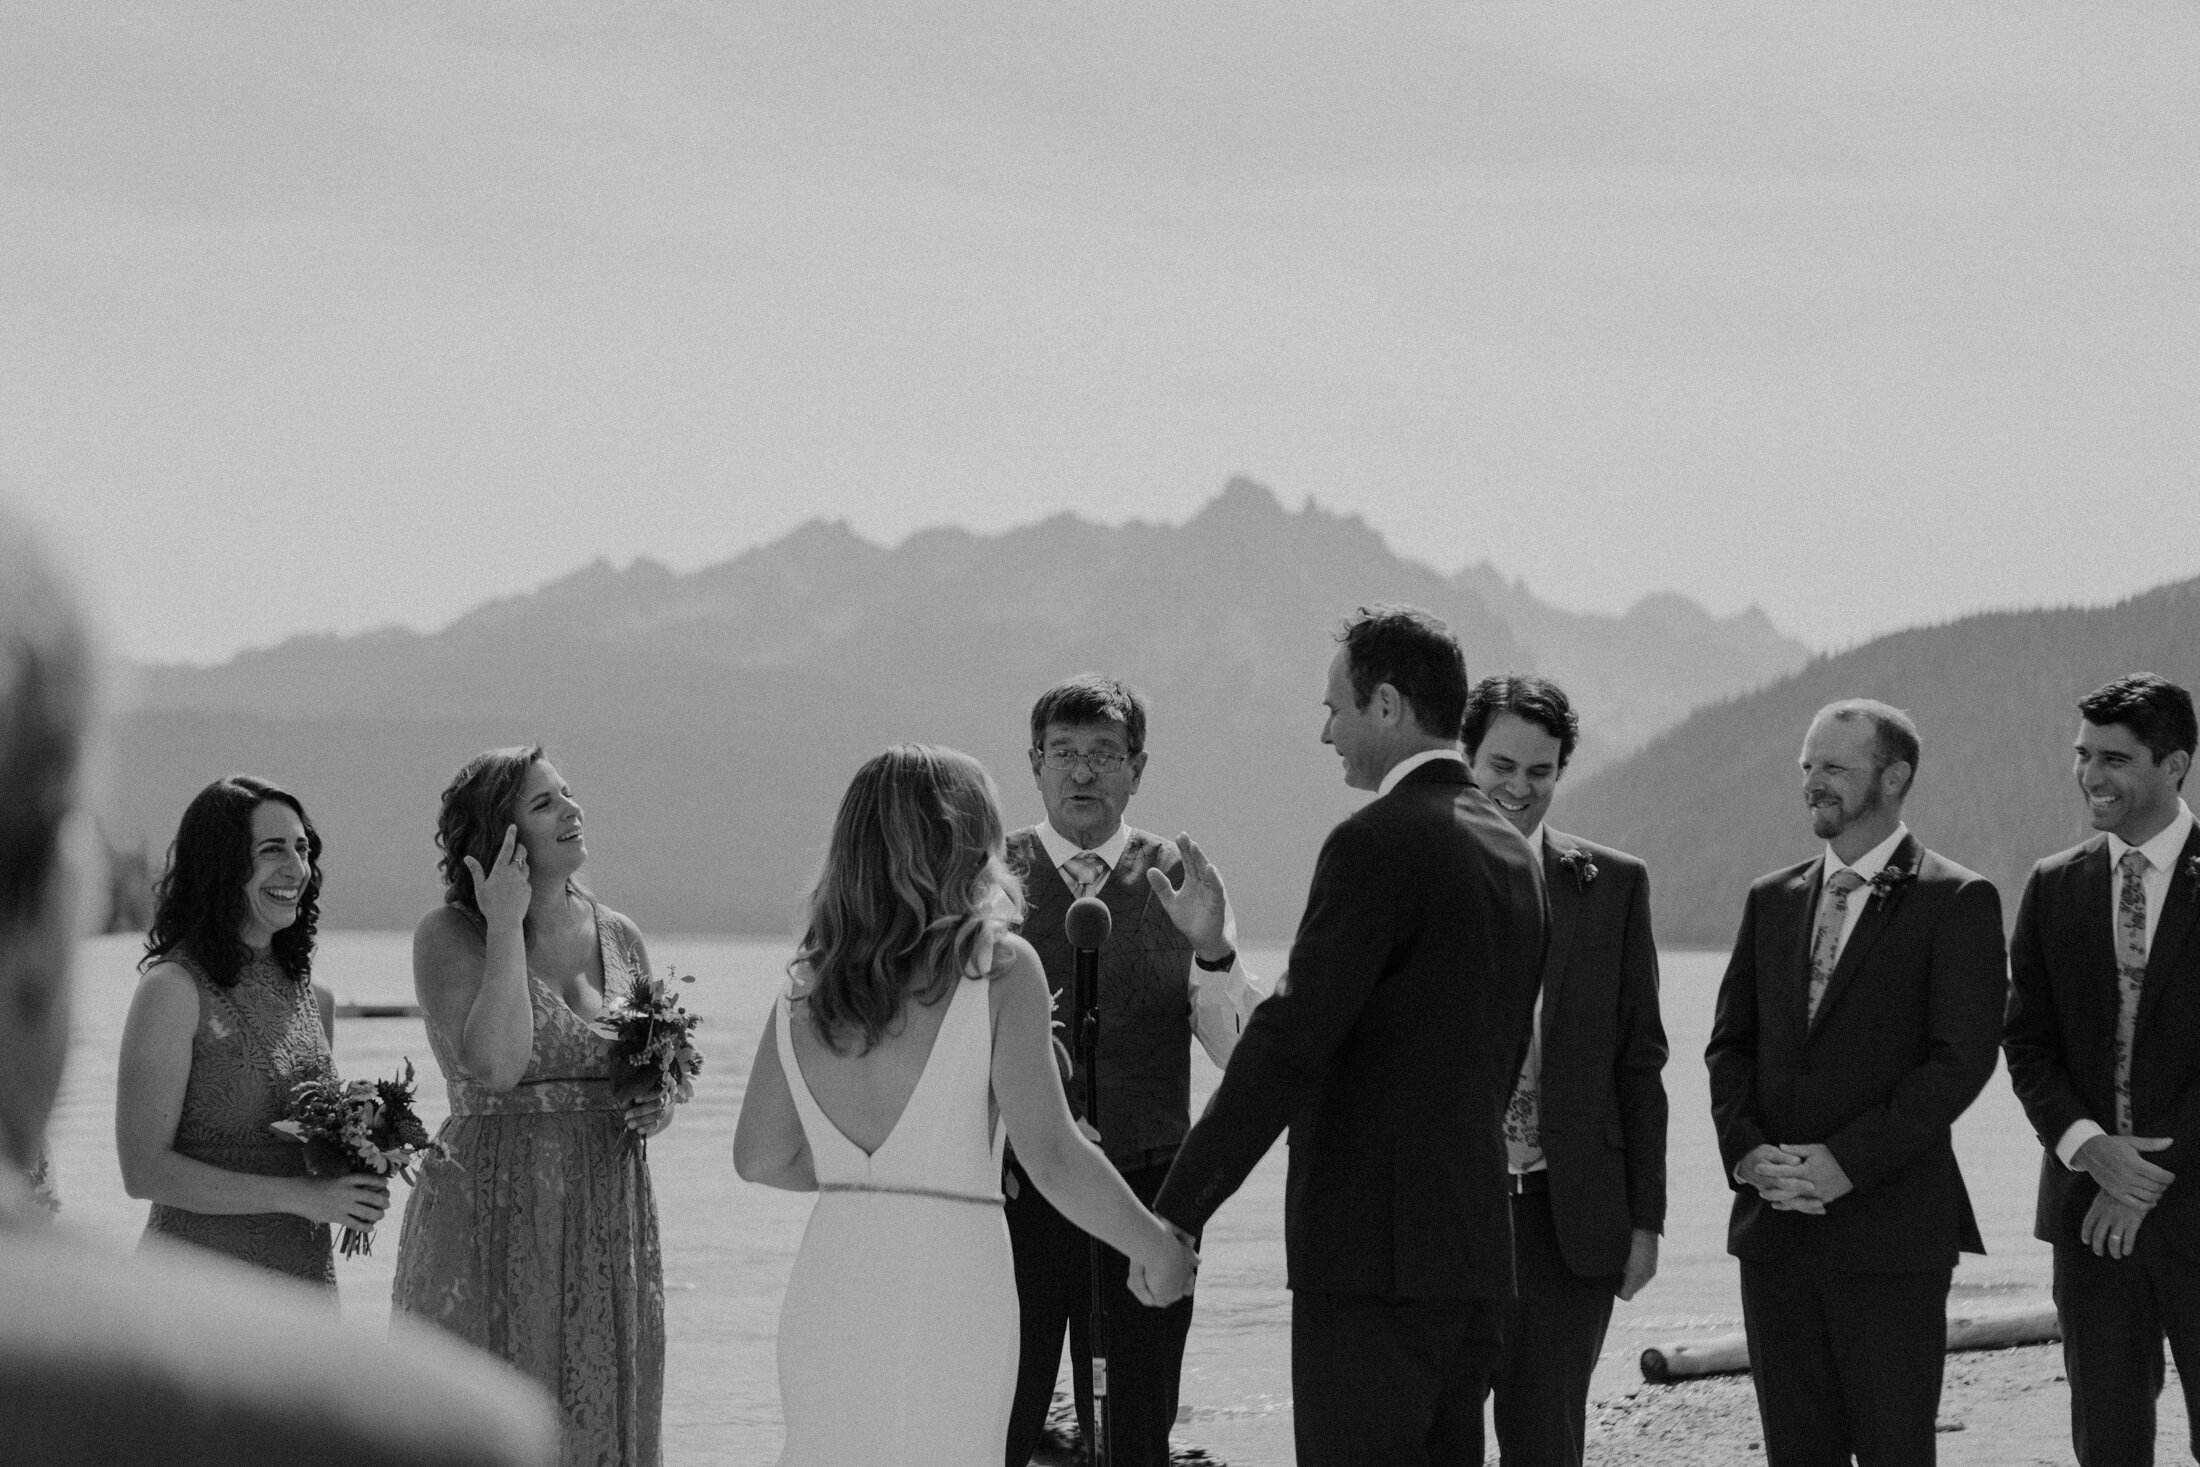 redfish-lake-wedding-stanley-idaho-b_A-59.jpg